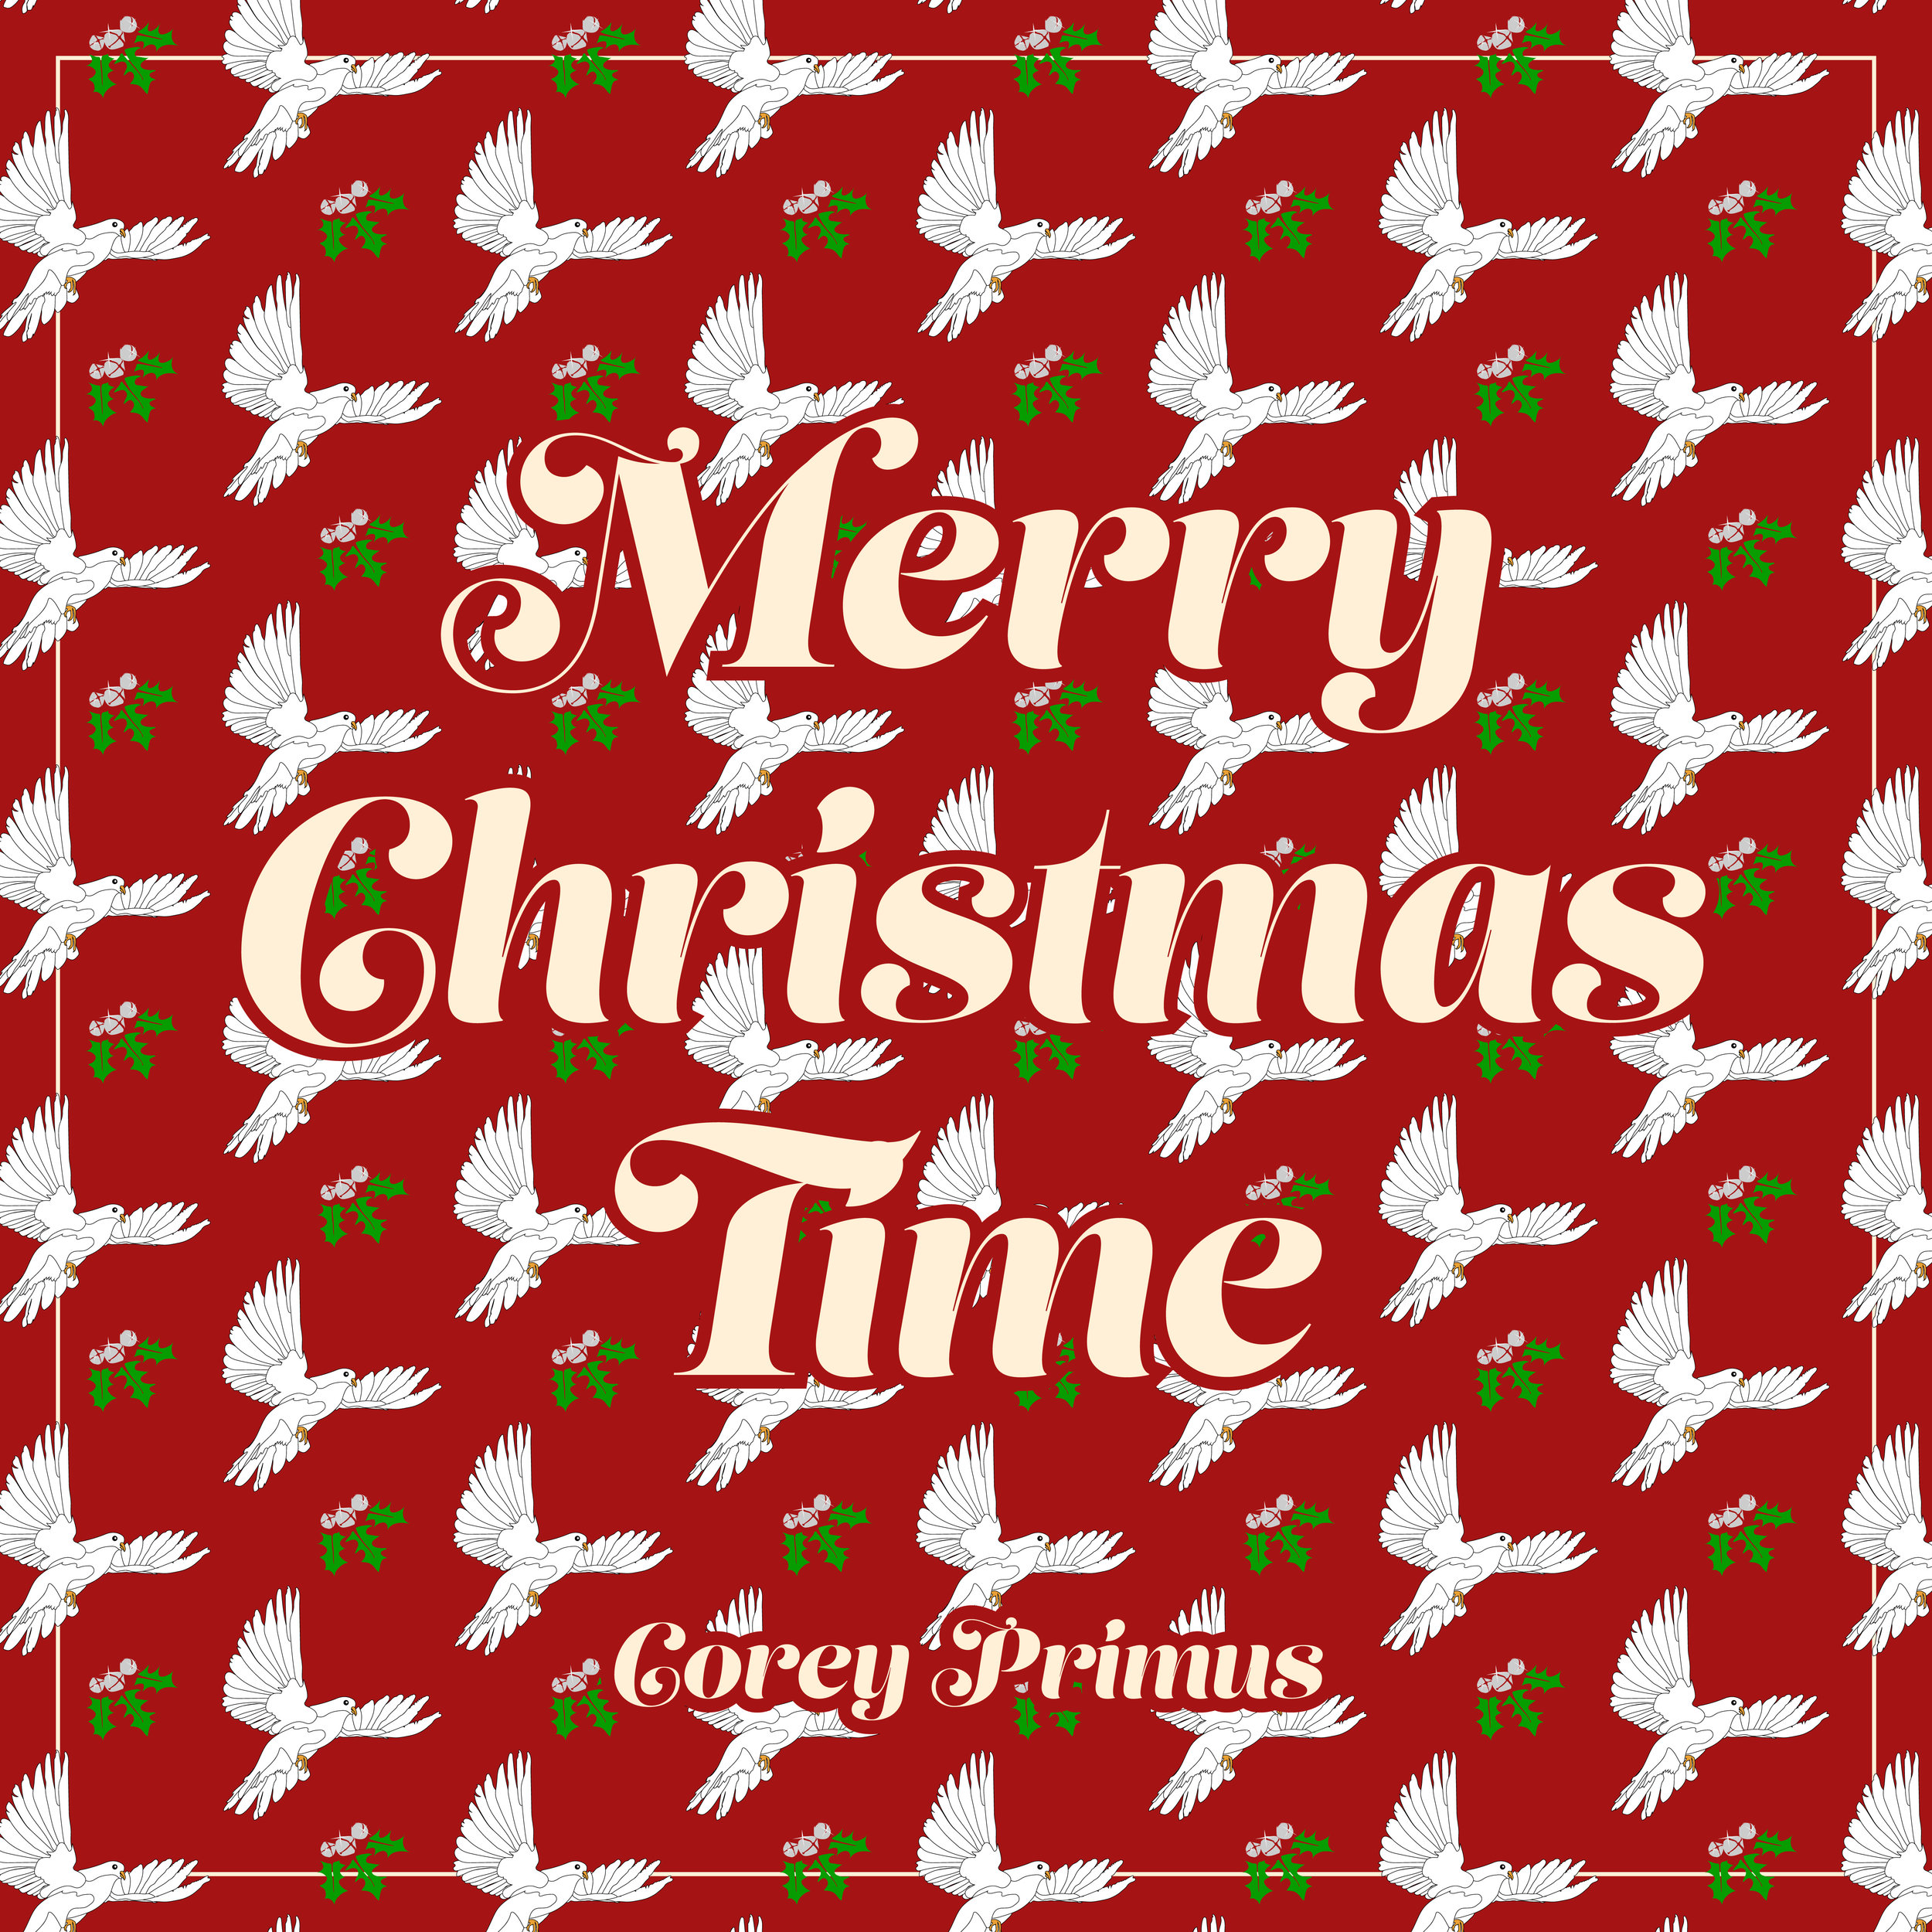 merry-christmas-time-full-1-04.jpg